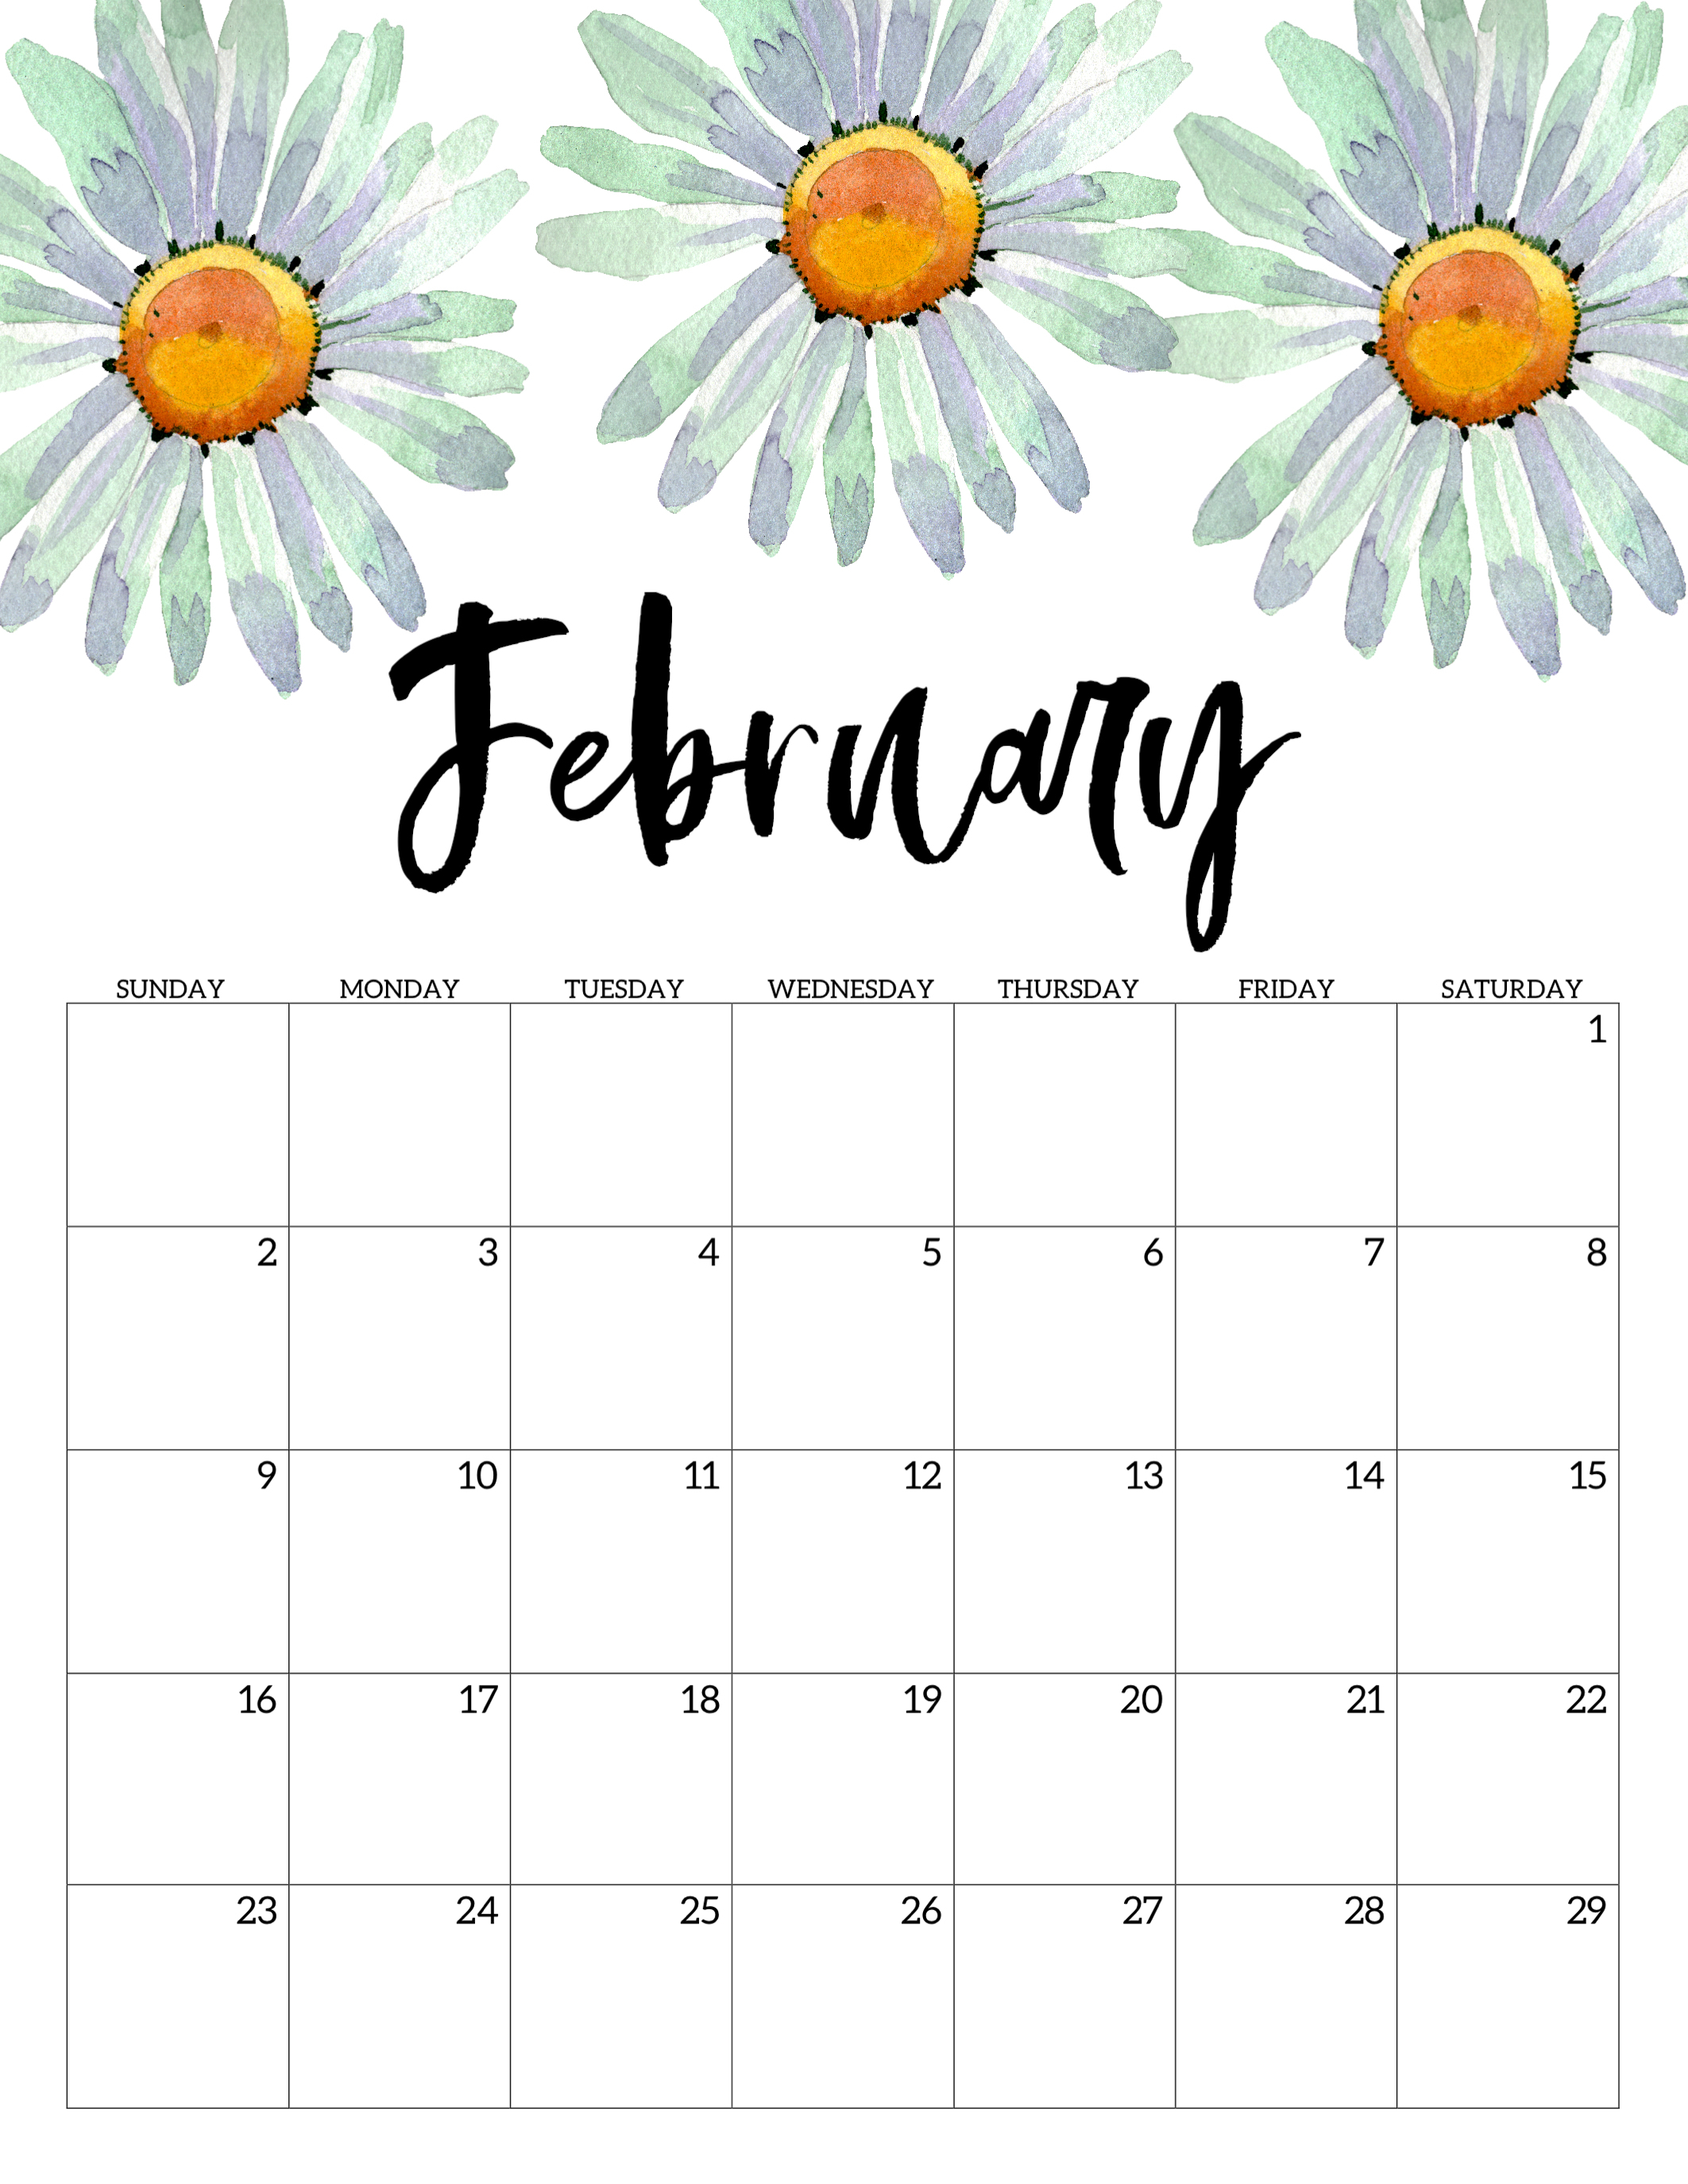 Printable Monthly Calendar 2020 in Monthly Calendar With Time Slots 2020